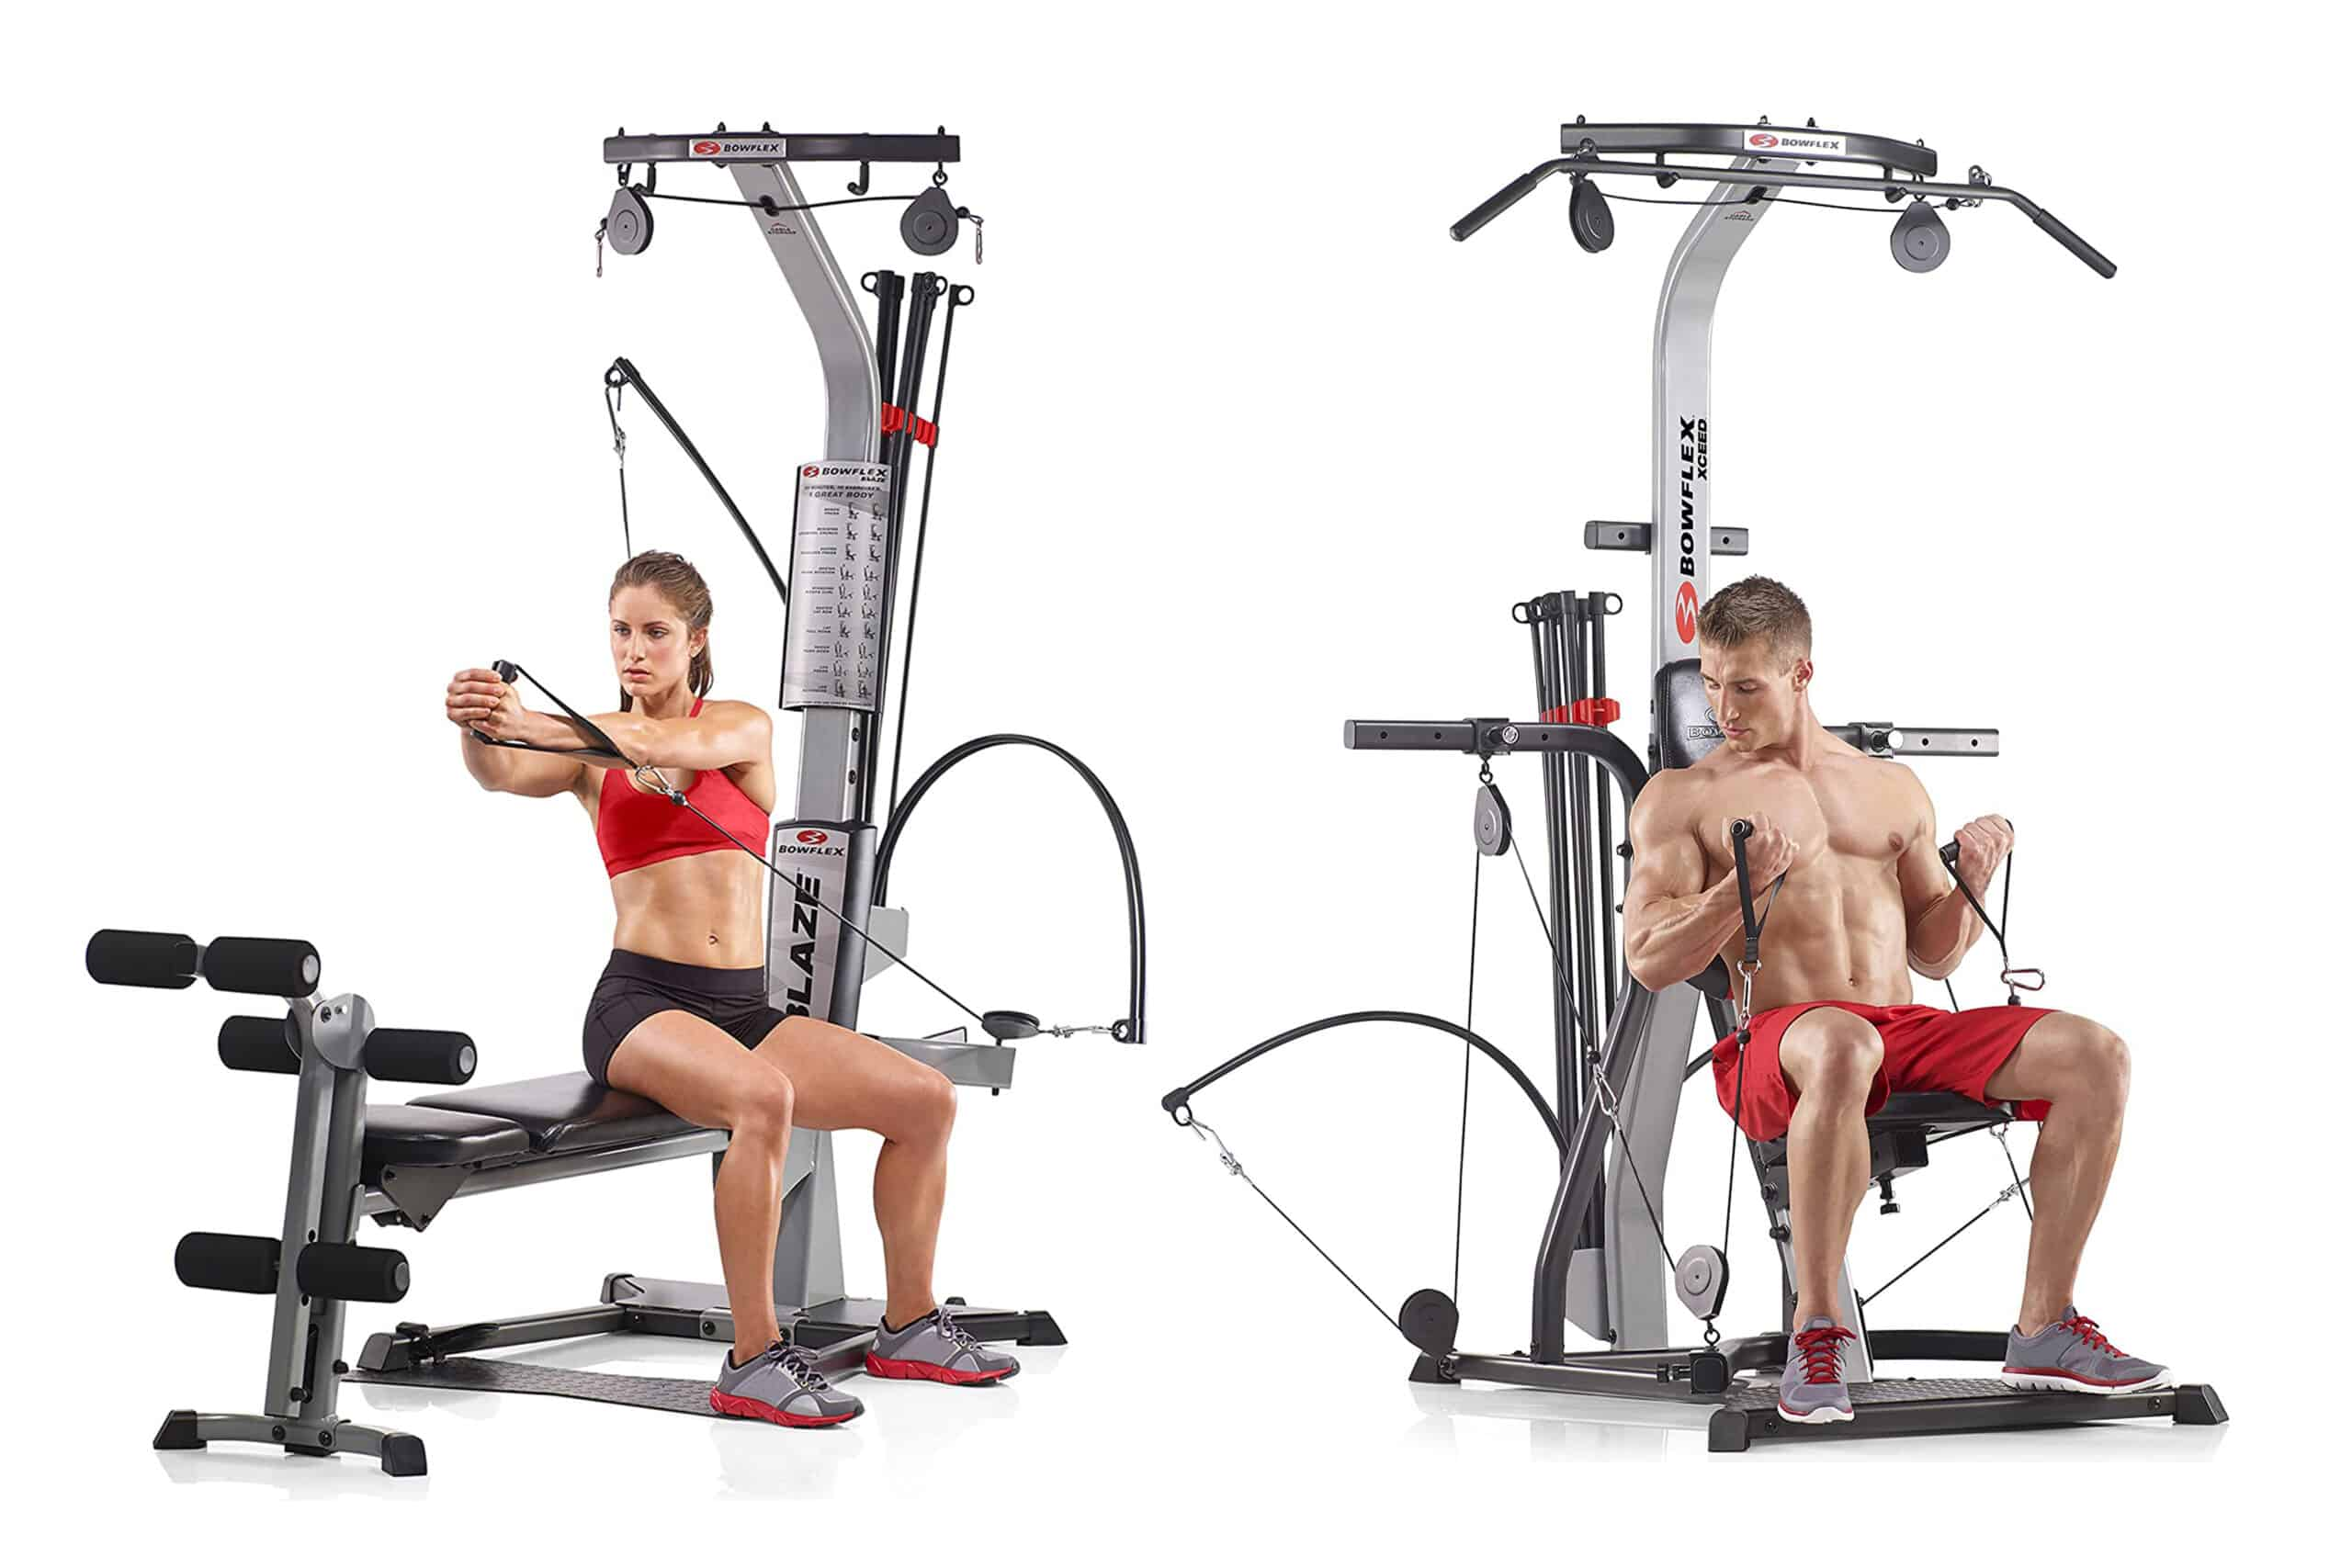 7 Best Bowflex Machines For Your Home Gym